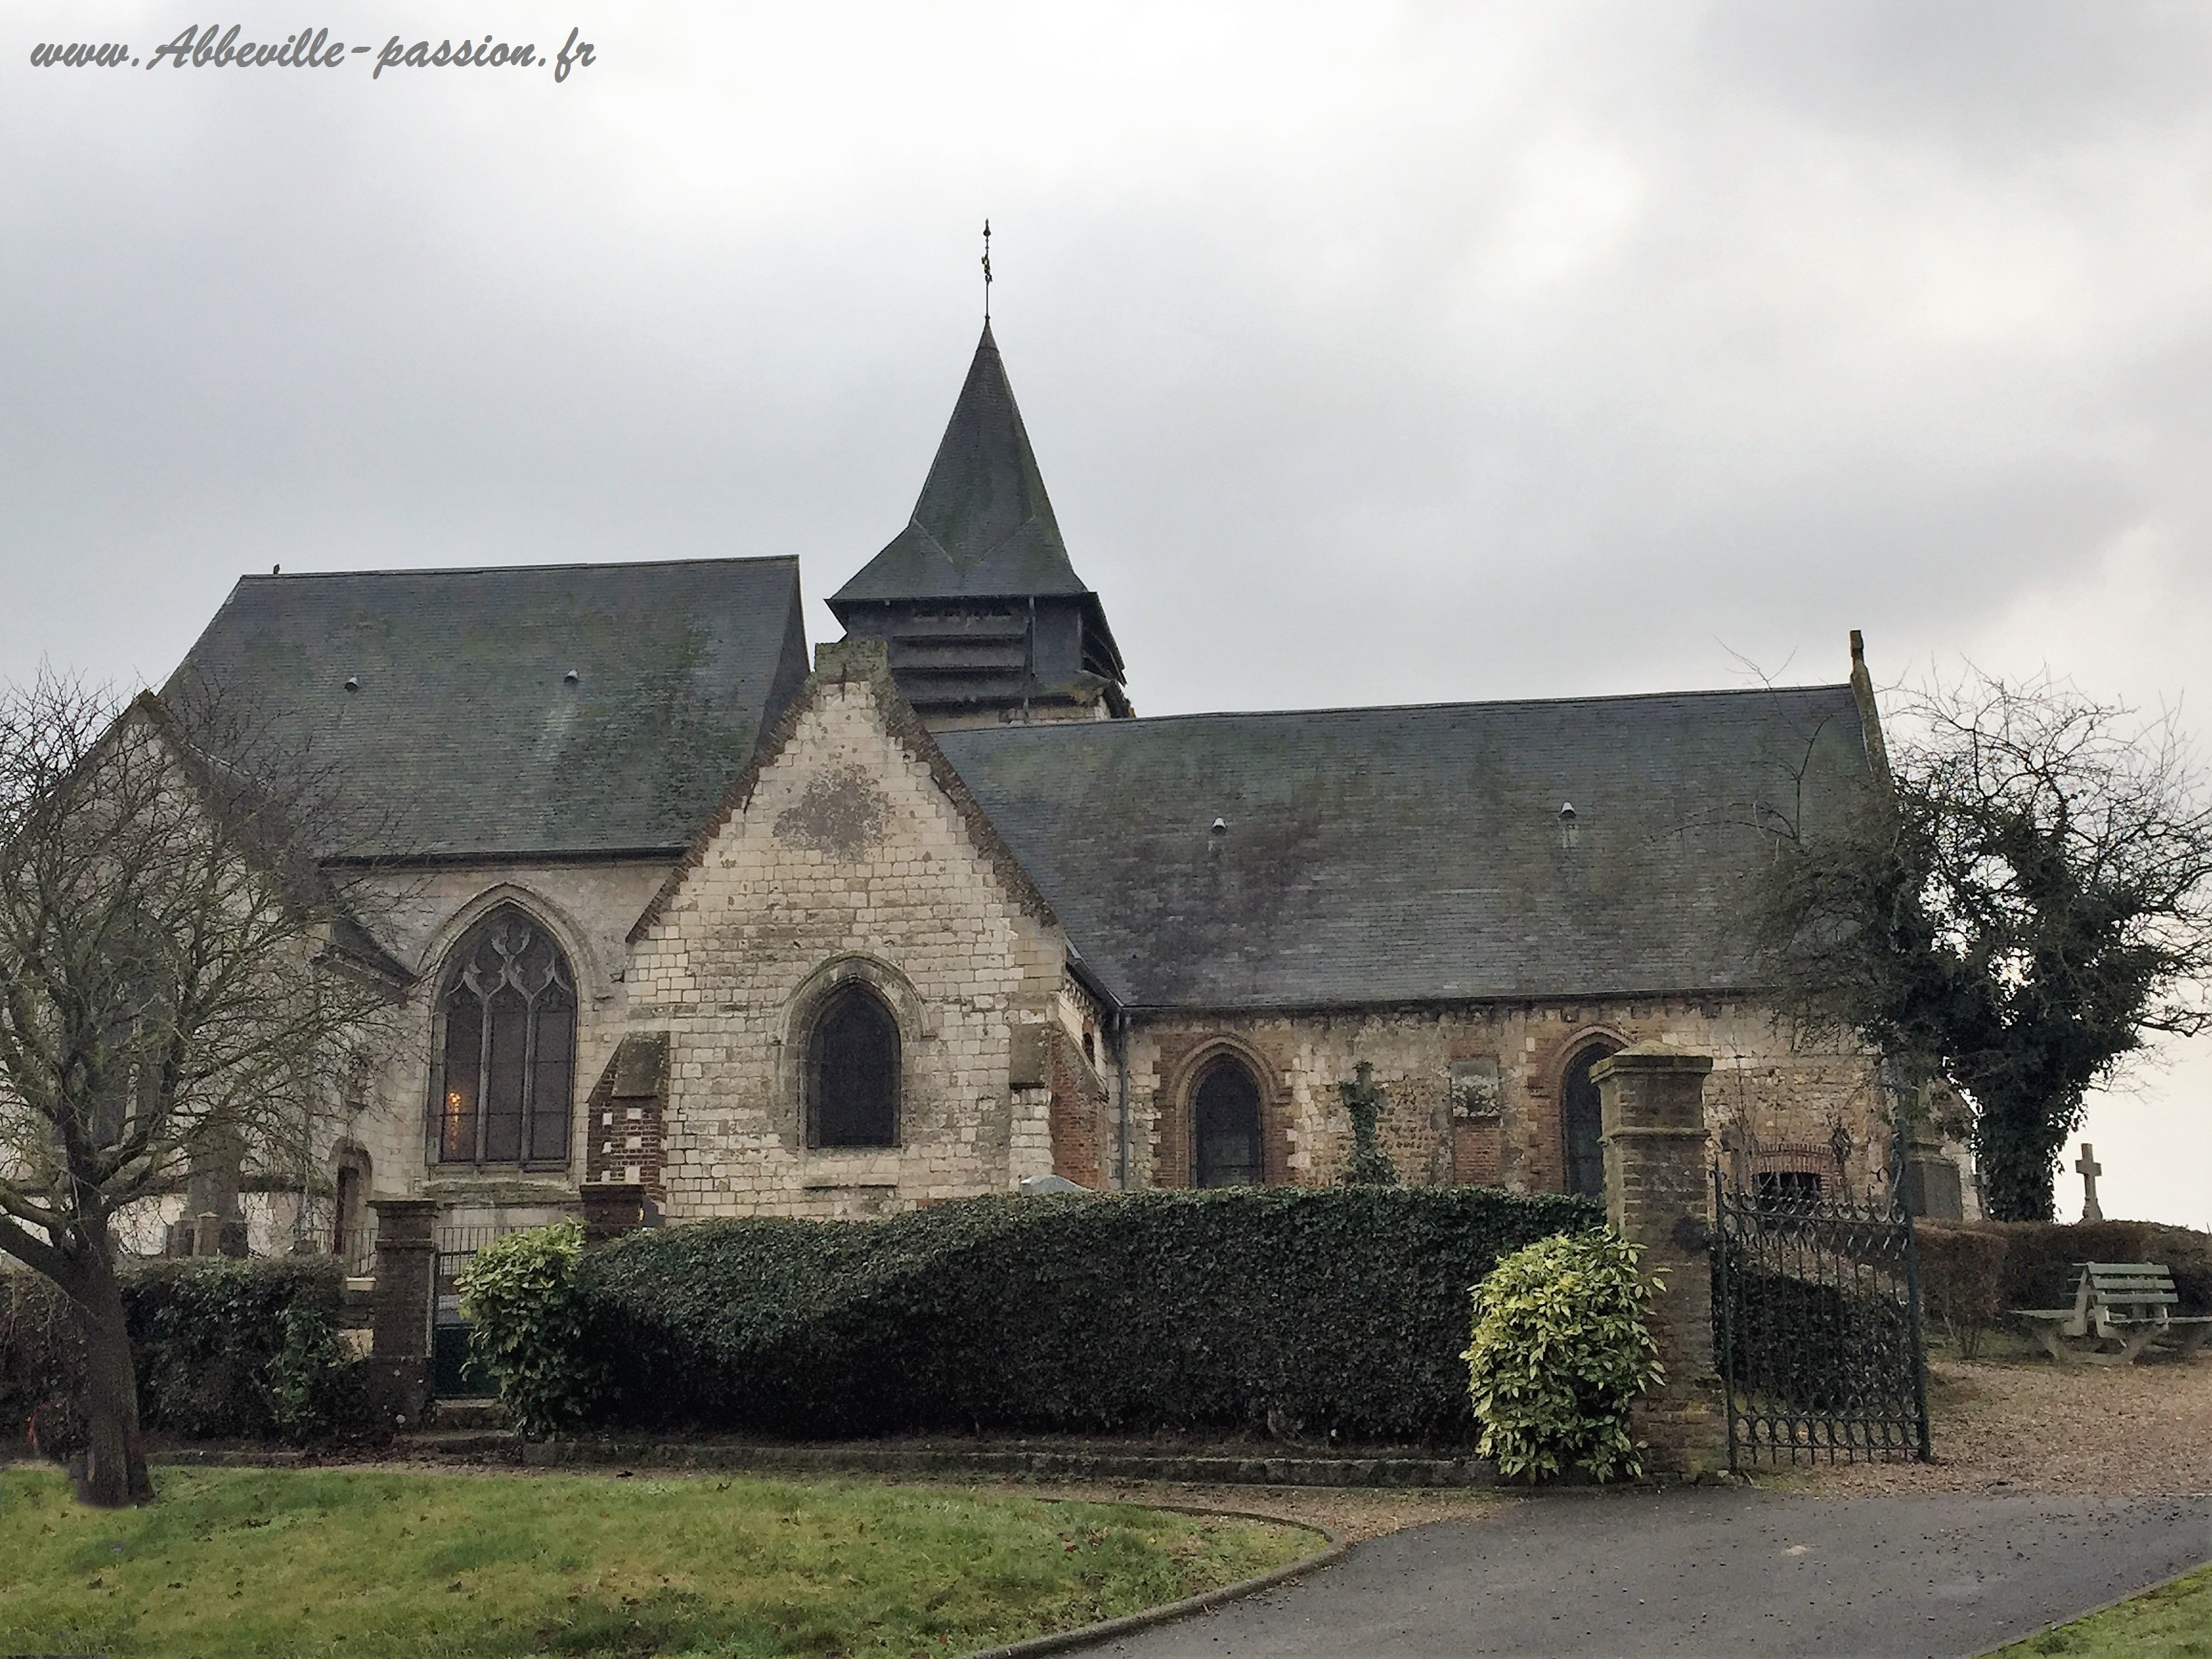 église - Copie.jpeg